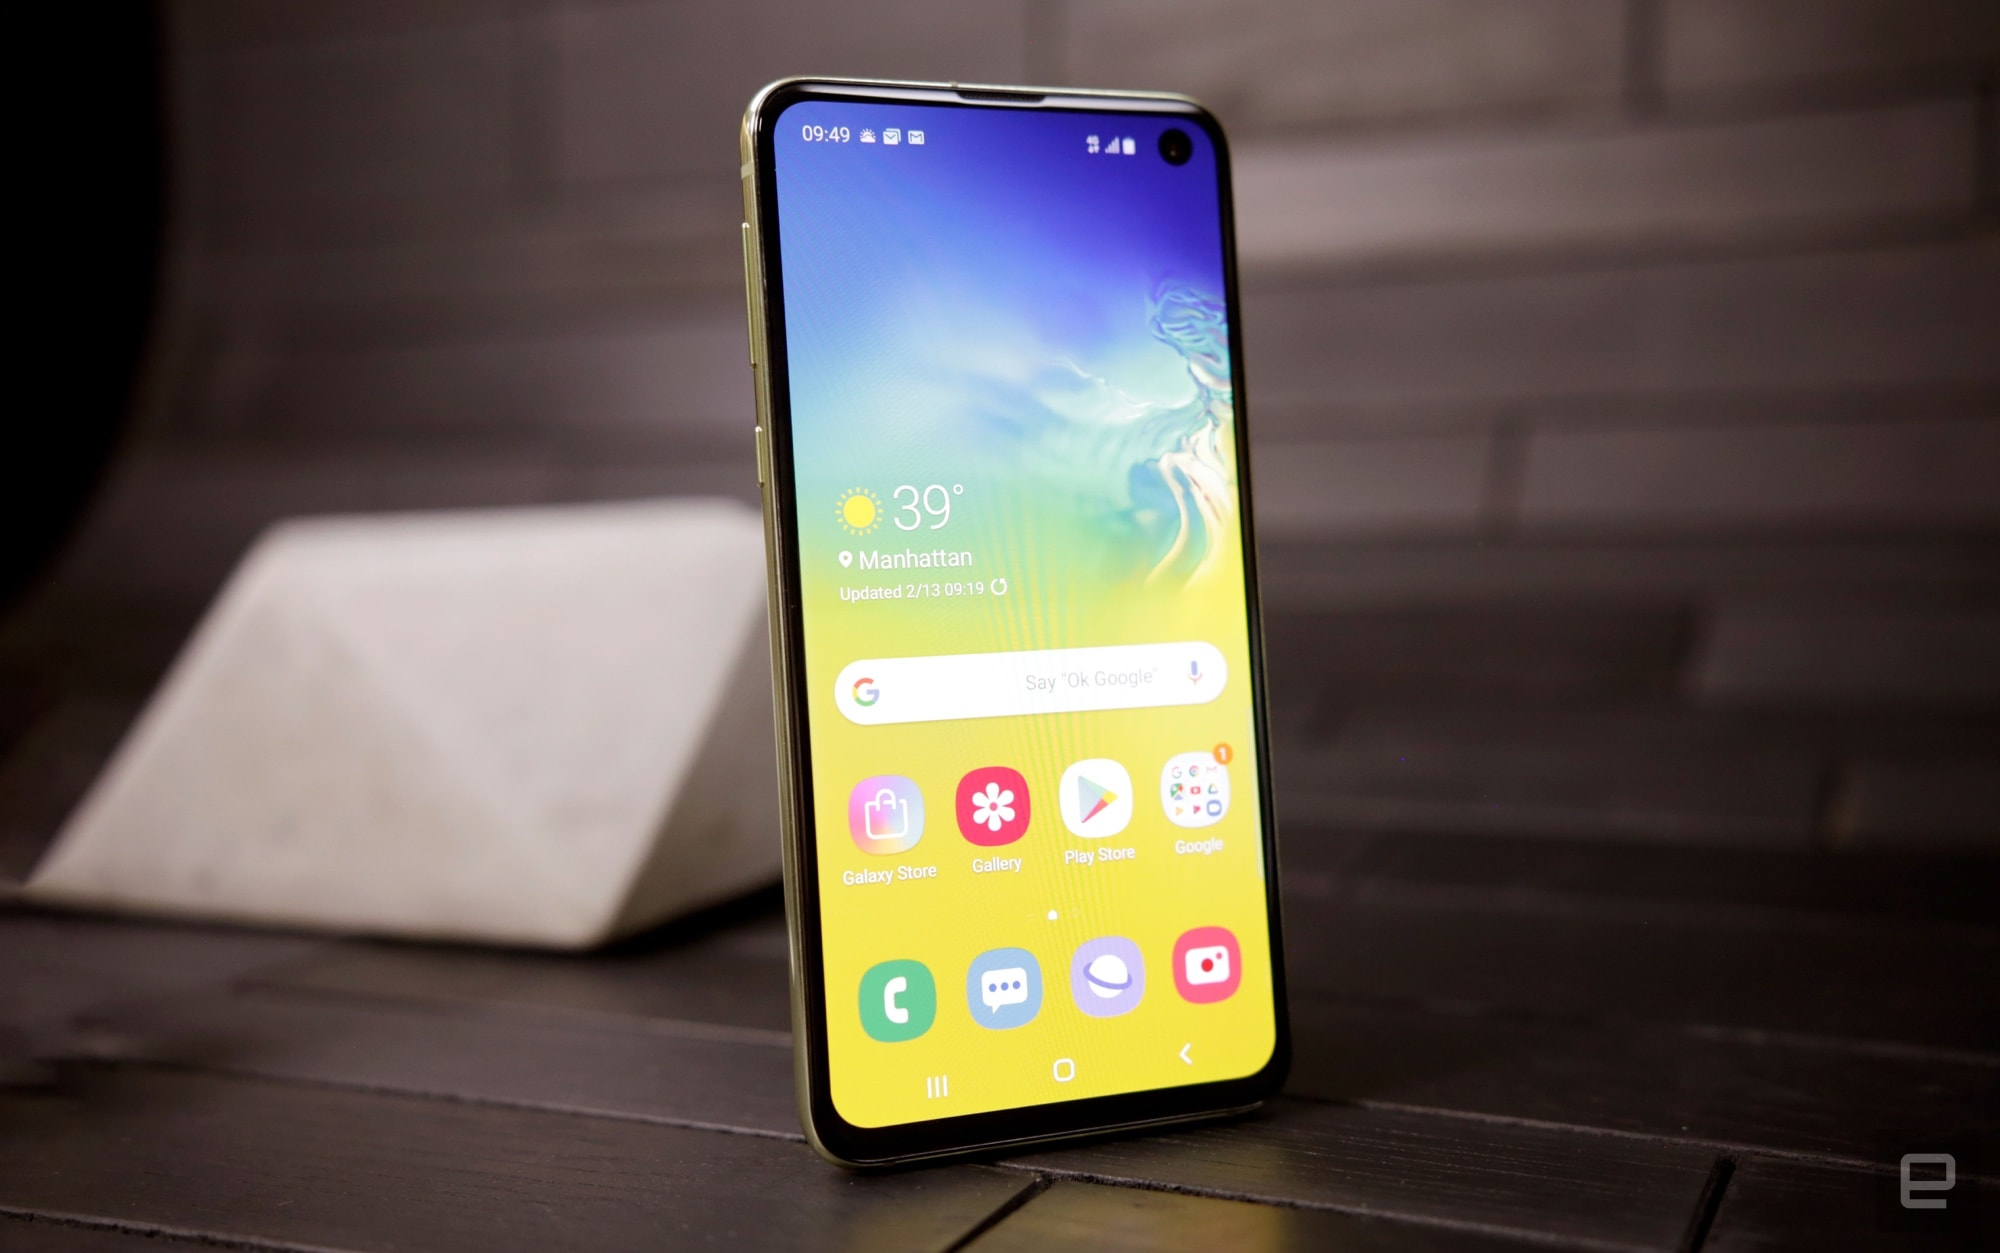 Samsung Galaxy S10e hands-on: High-end, but not too high